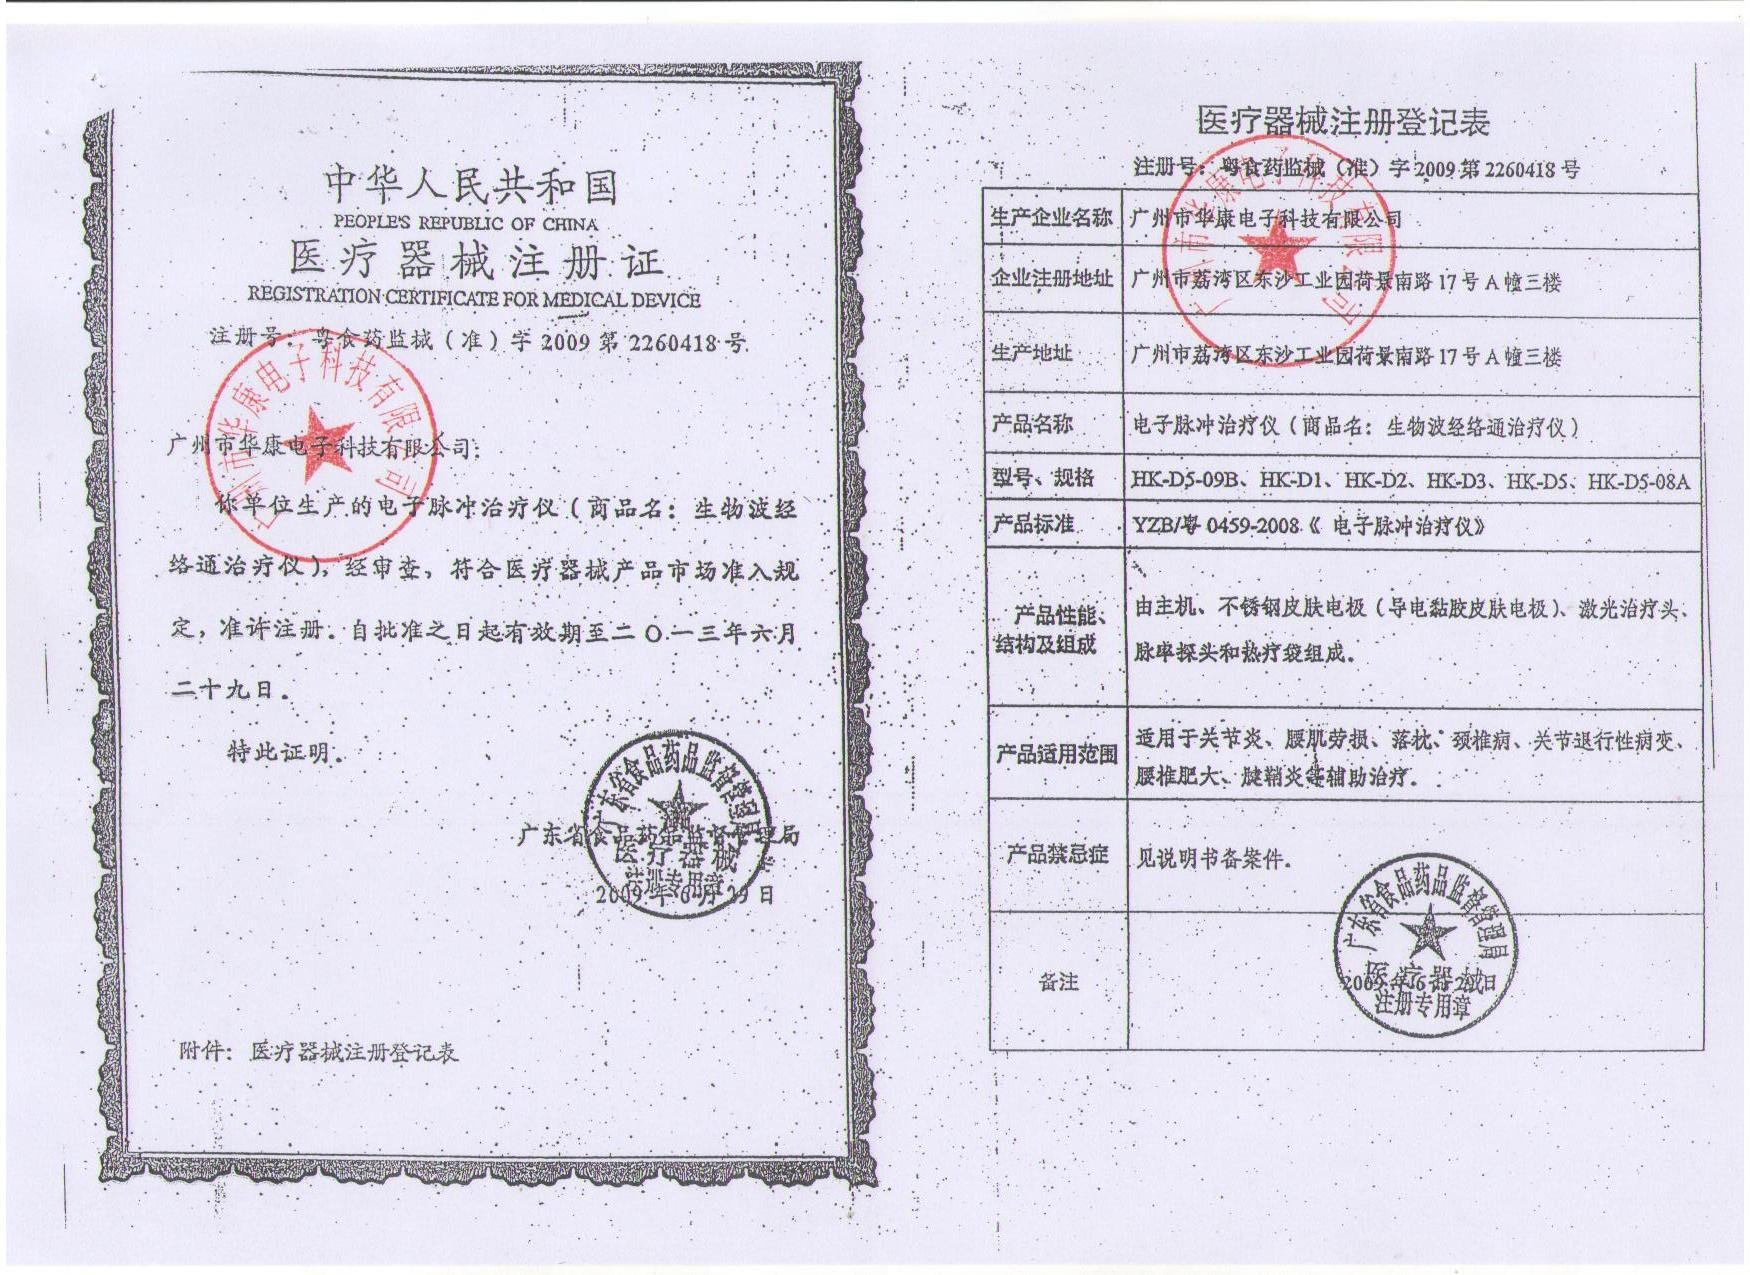 Medical Devices Registration certificate